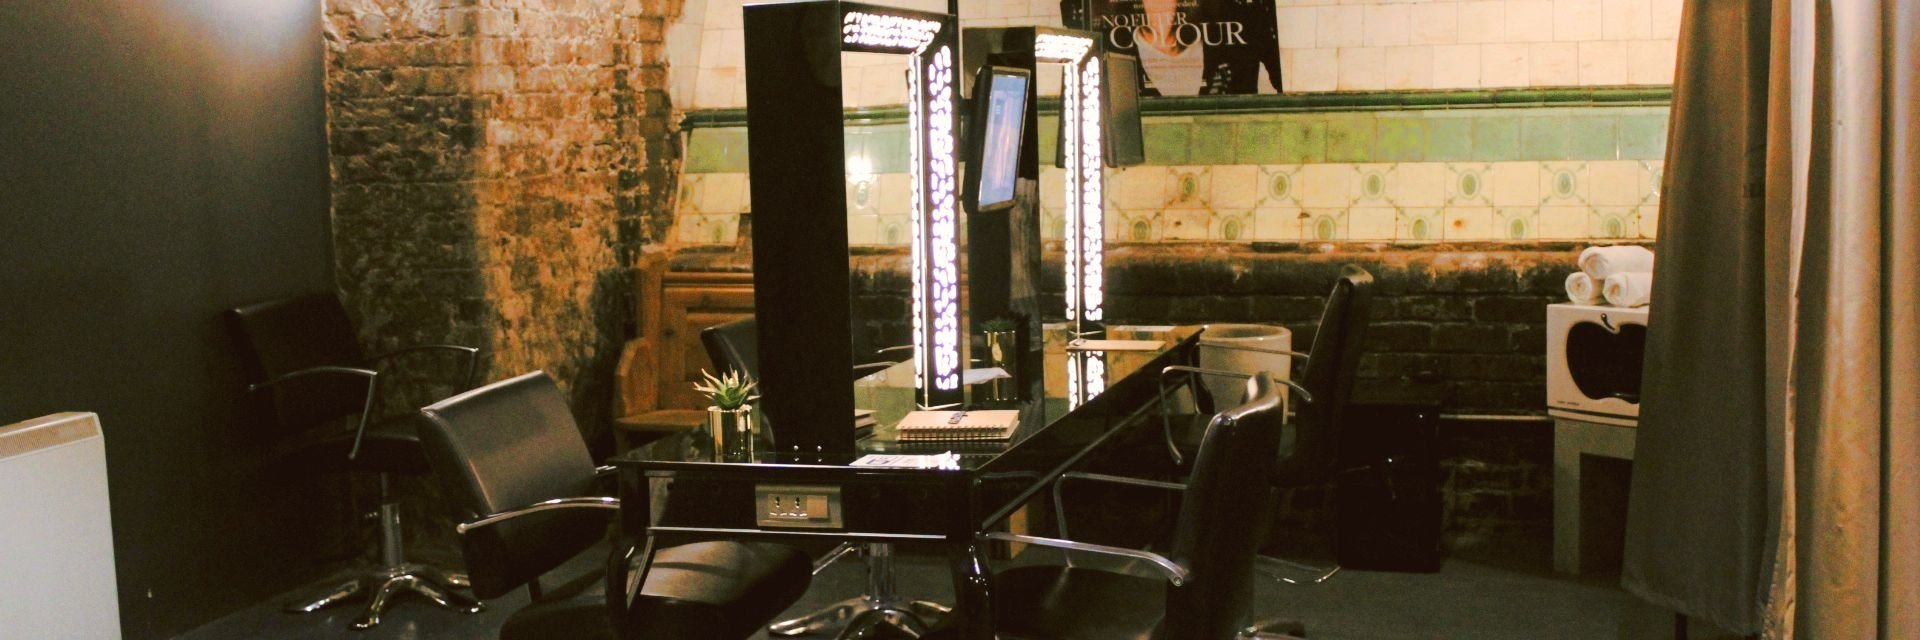 private hair and beauty appointments Birmingham, muslim beauty appointments Birmingham salon